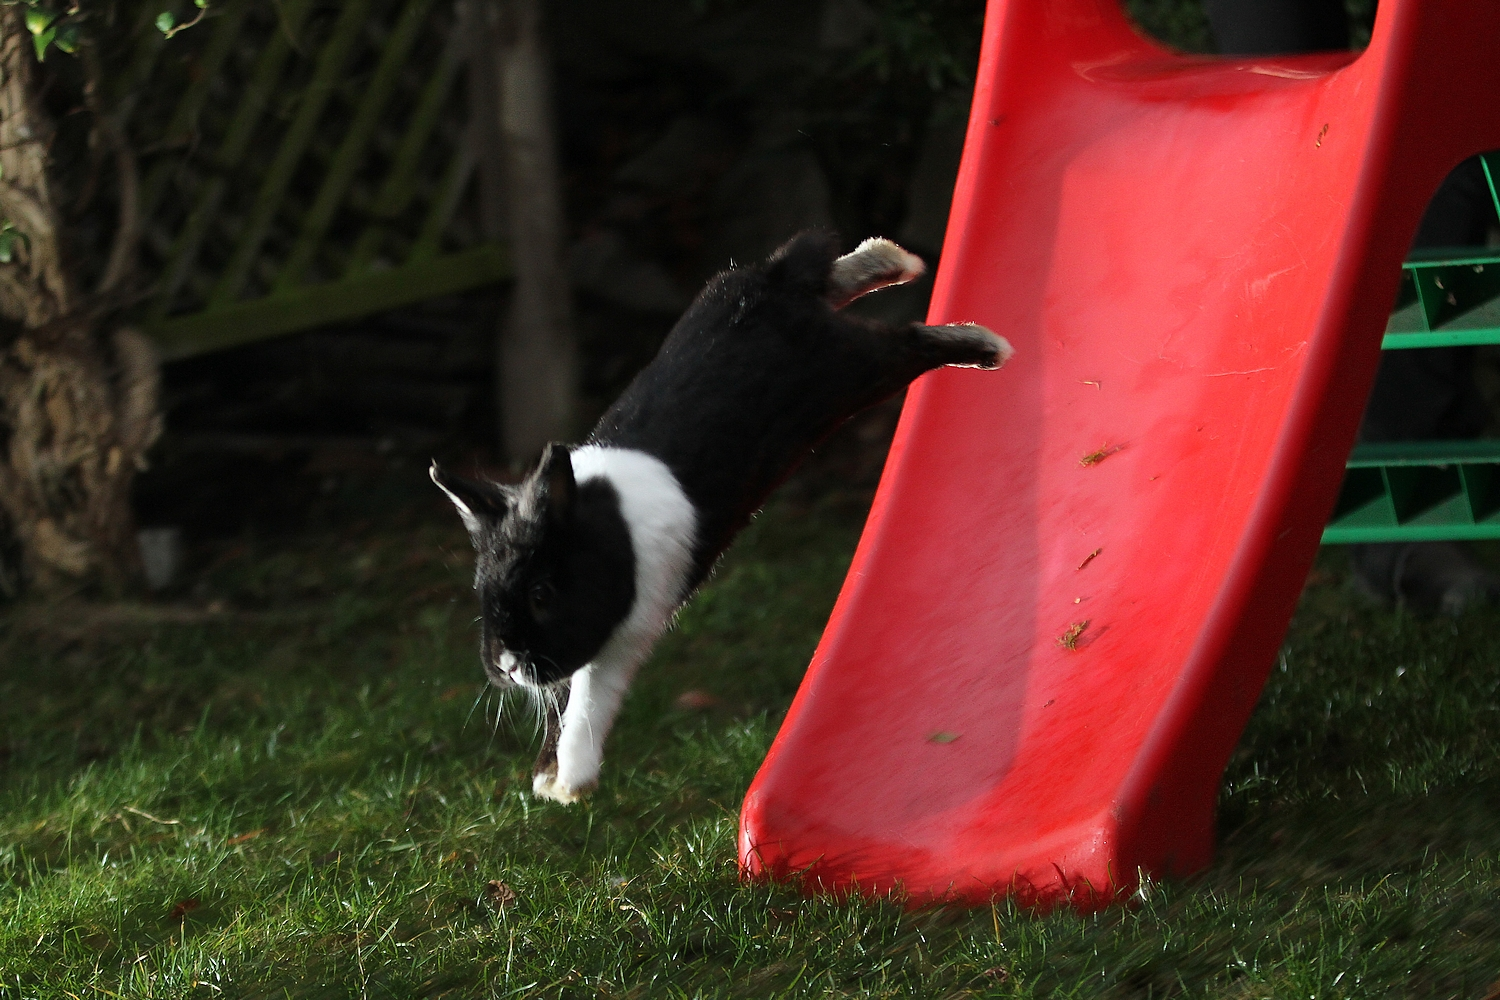 Bunny Takes a Flying Leap Off the Slide